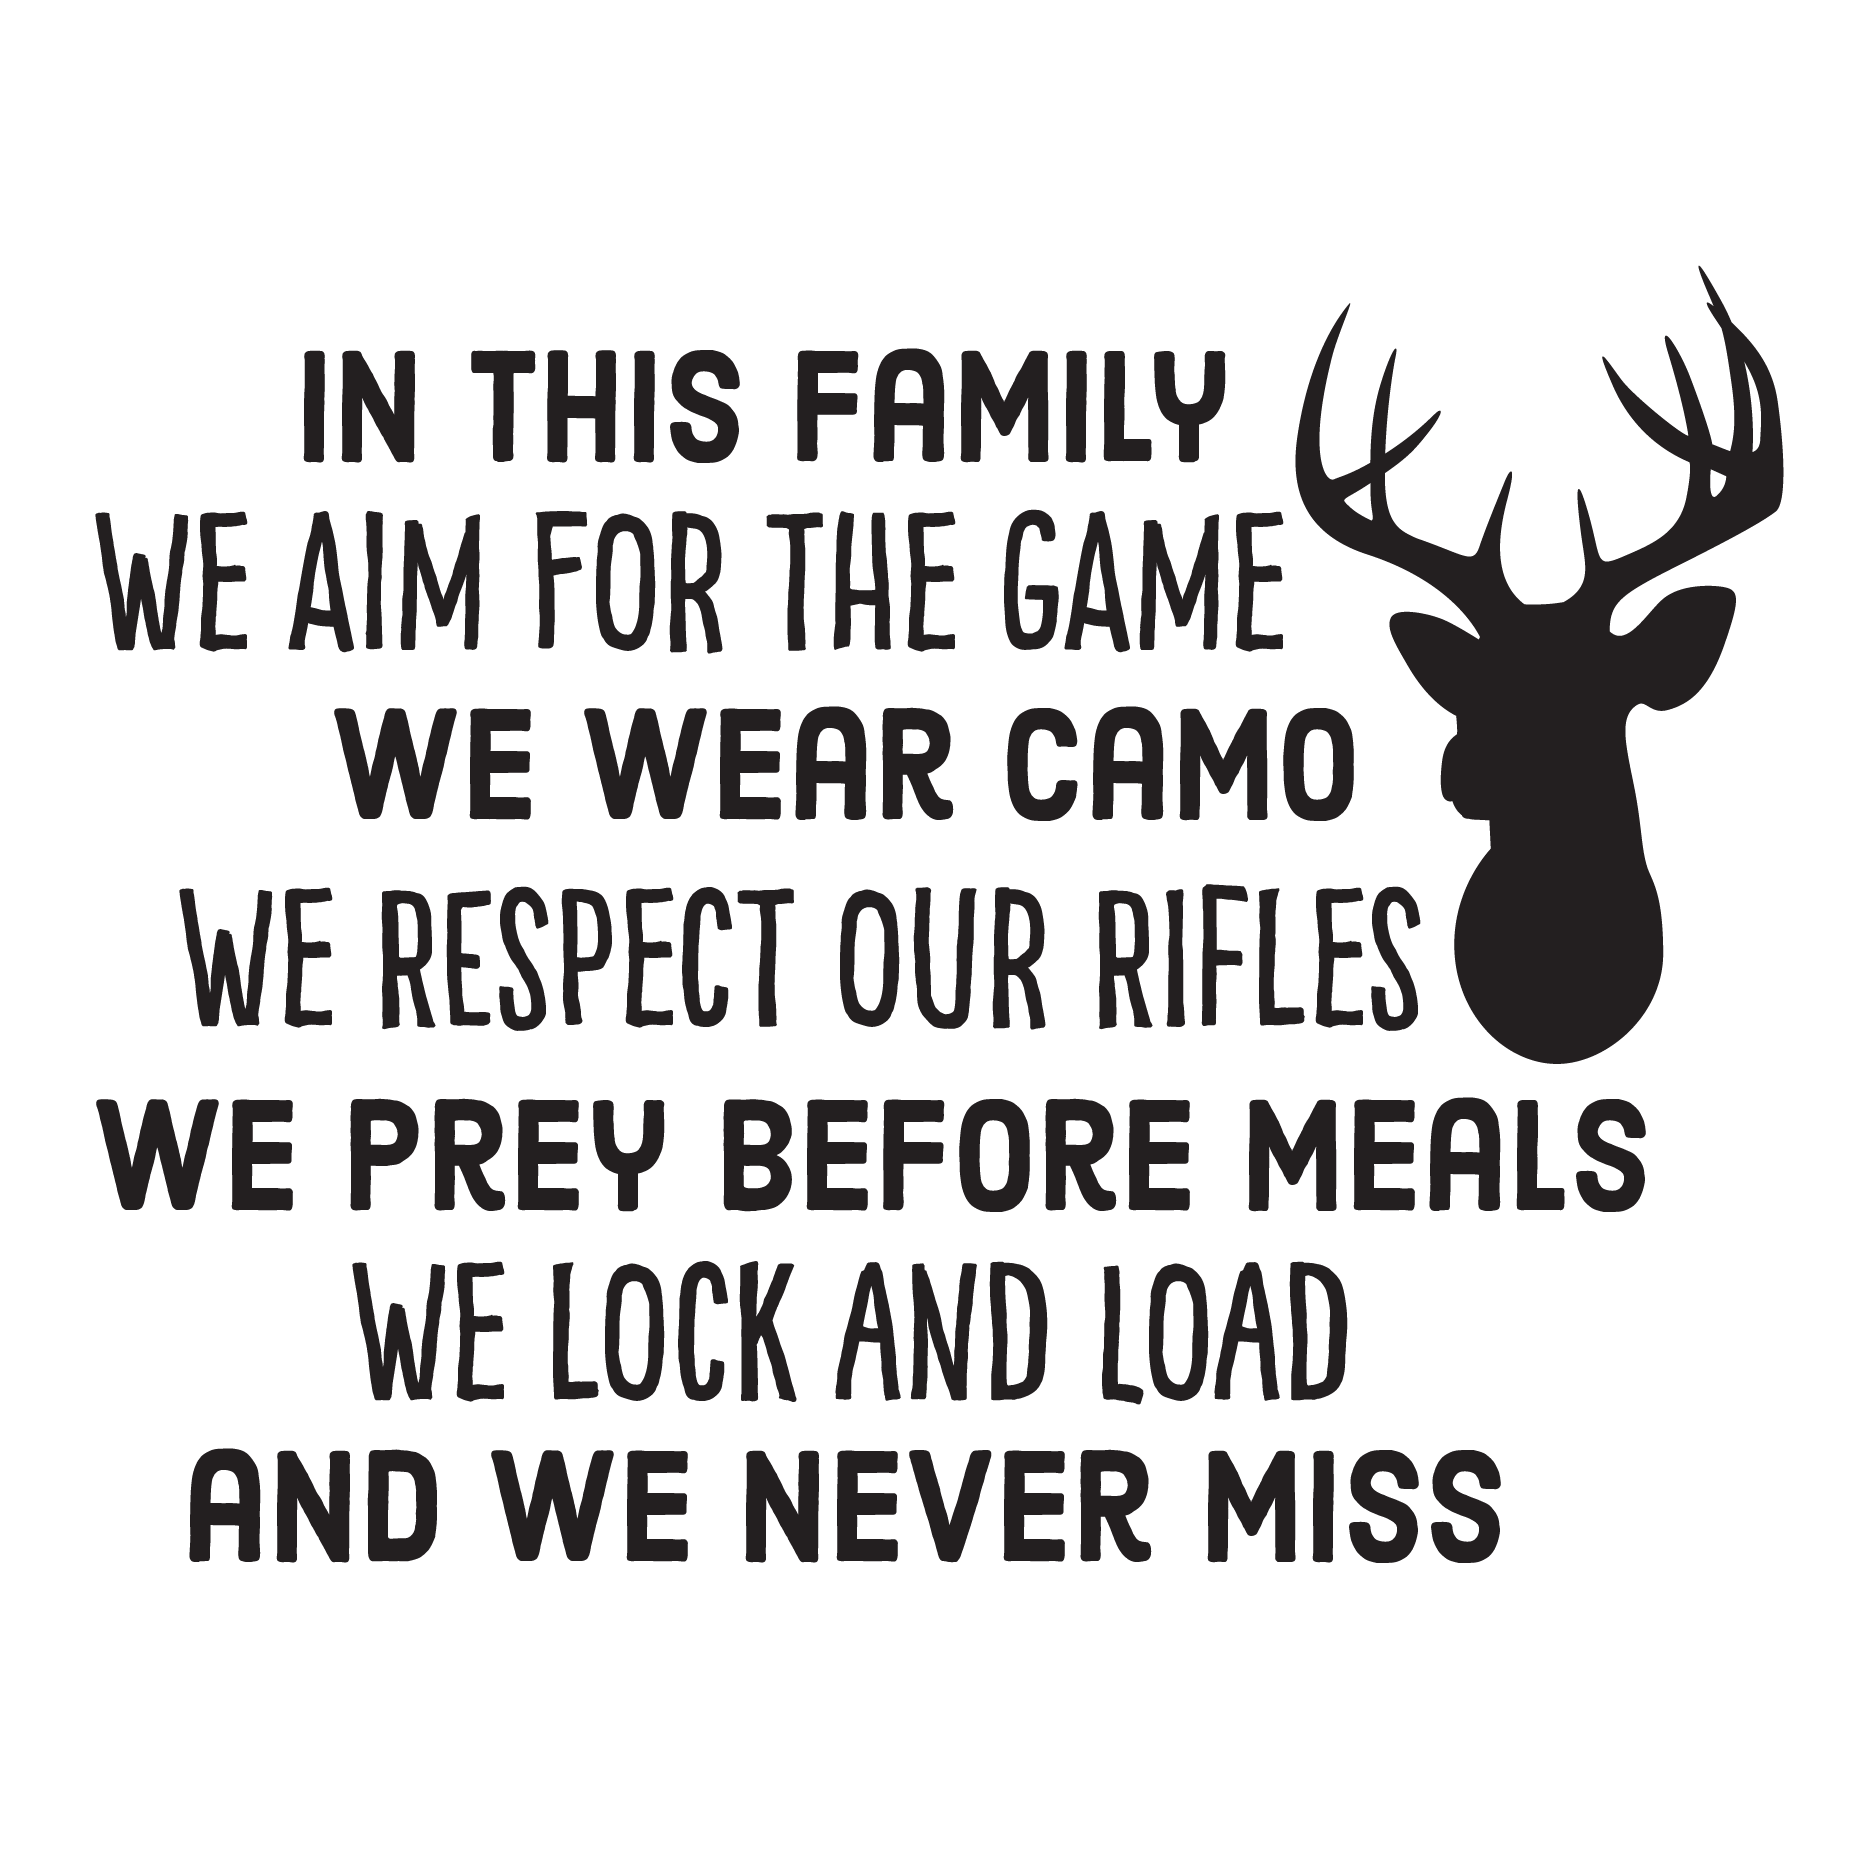 Hunting Family Rules Wall Quotes Decal Wallquotes Com